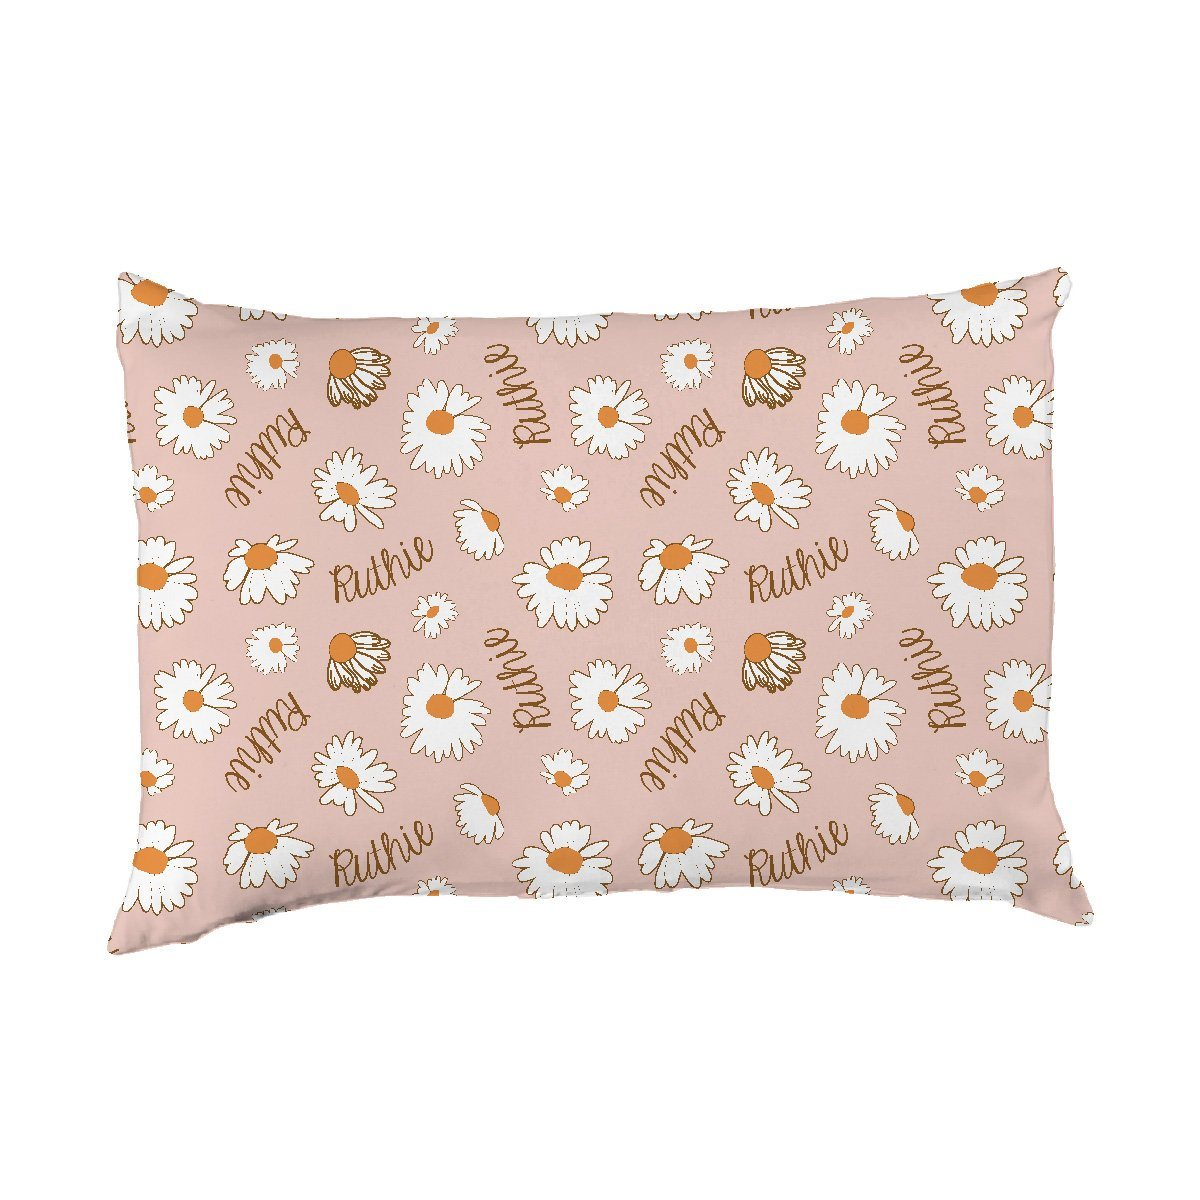 Ruthie's Far Out Floral | Big Kid Pillow Case